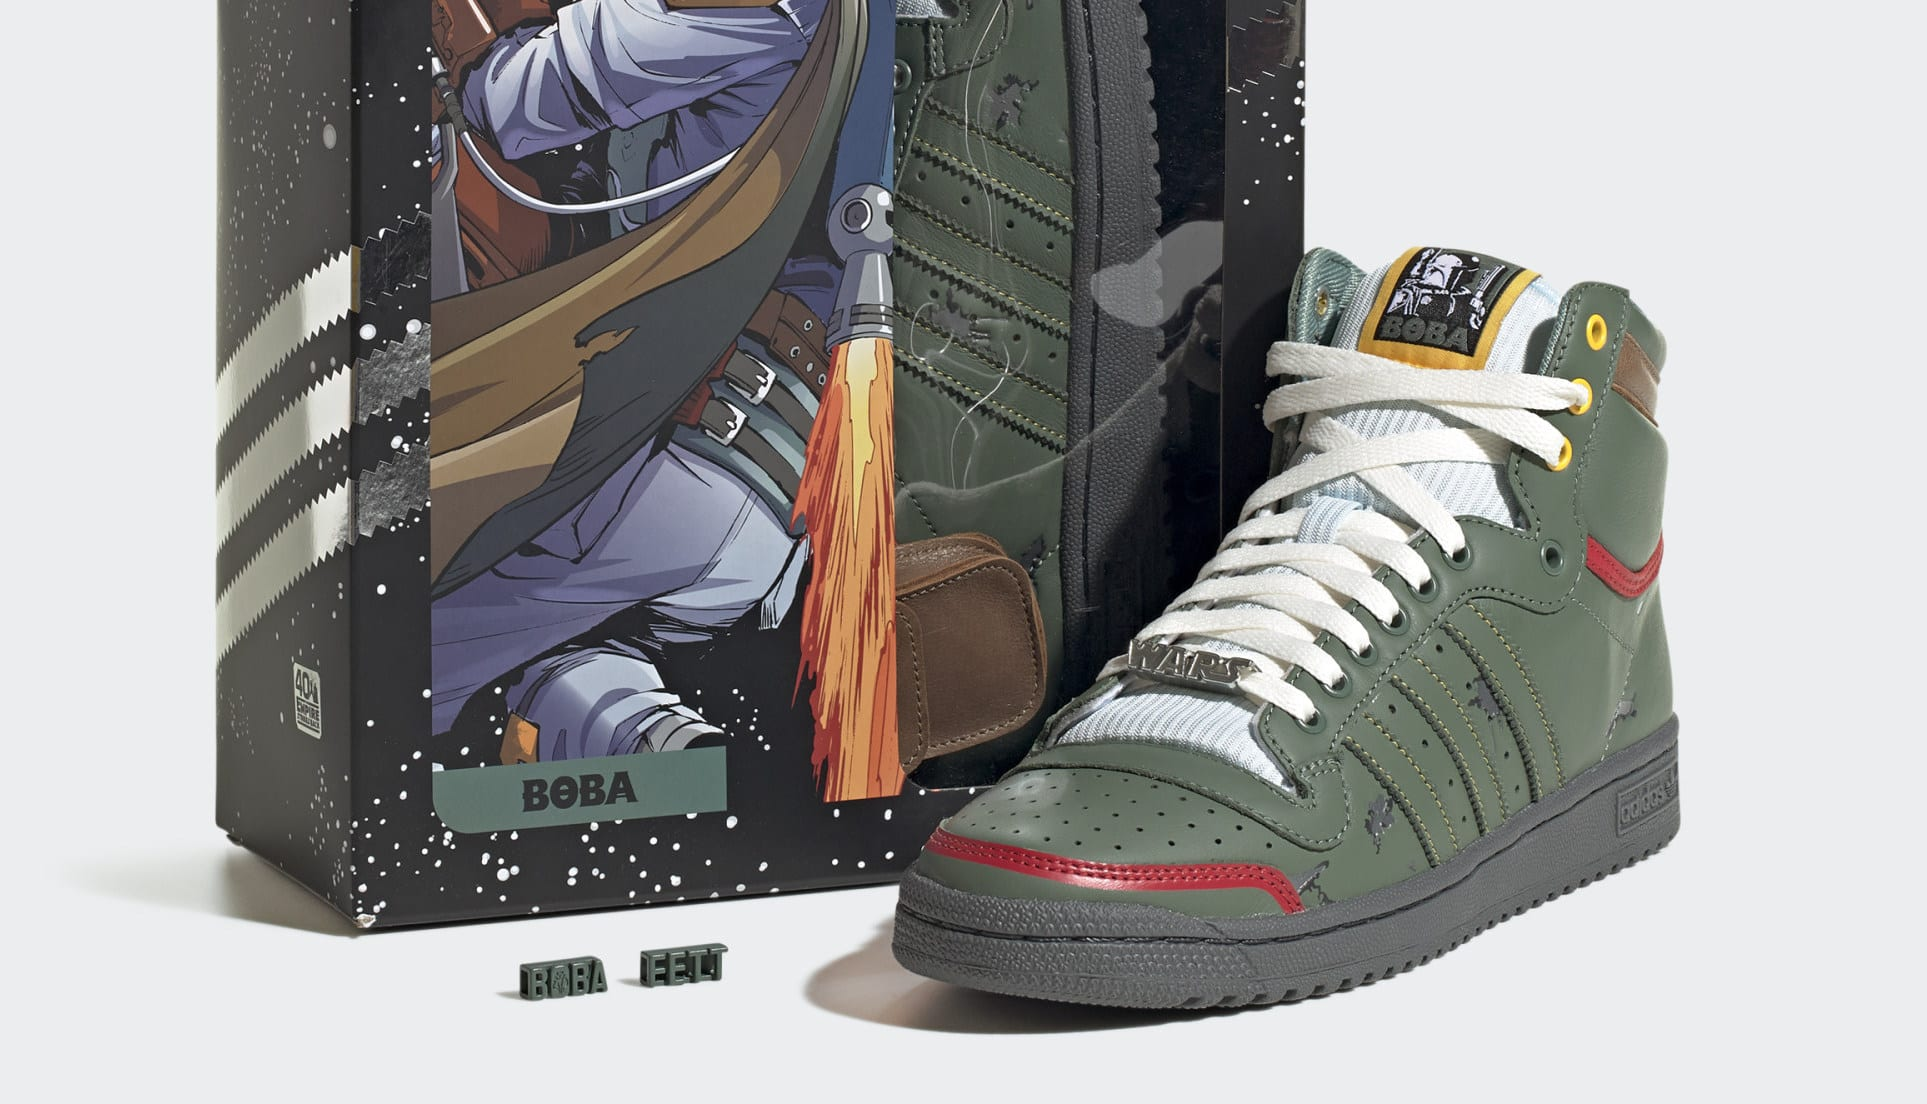 Adidas Boba Fett Top Ten Hi Star Wars disponibili dal 25 settembre anche in Italia